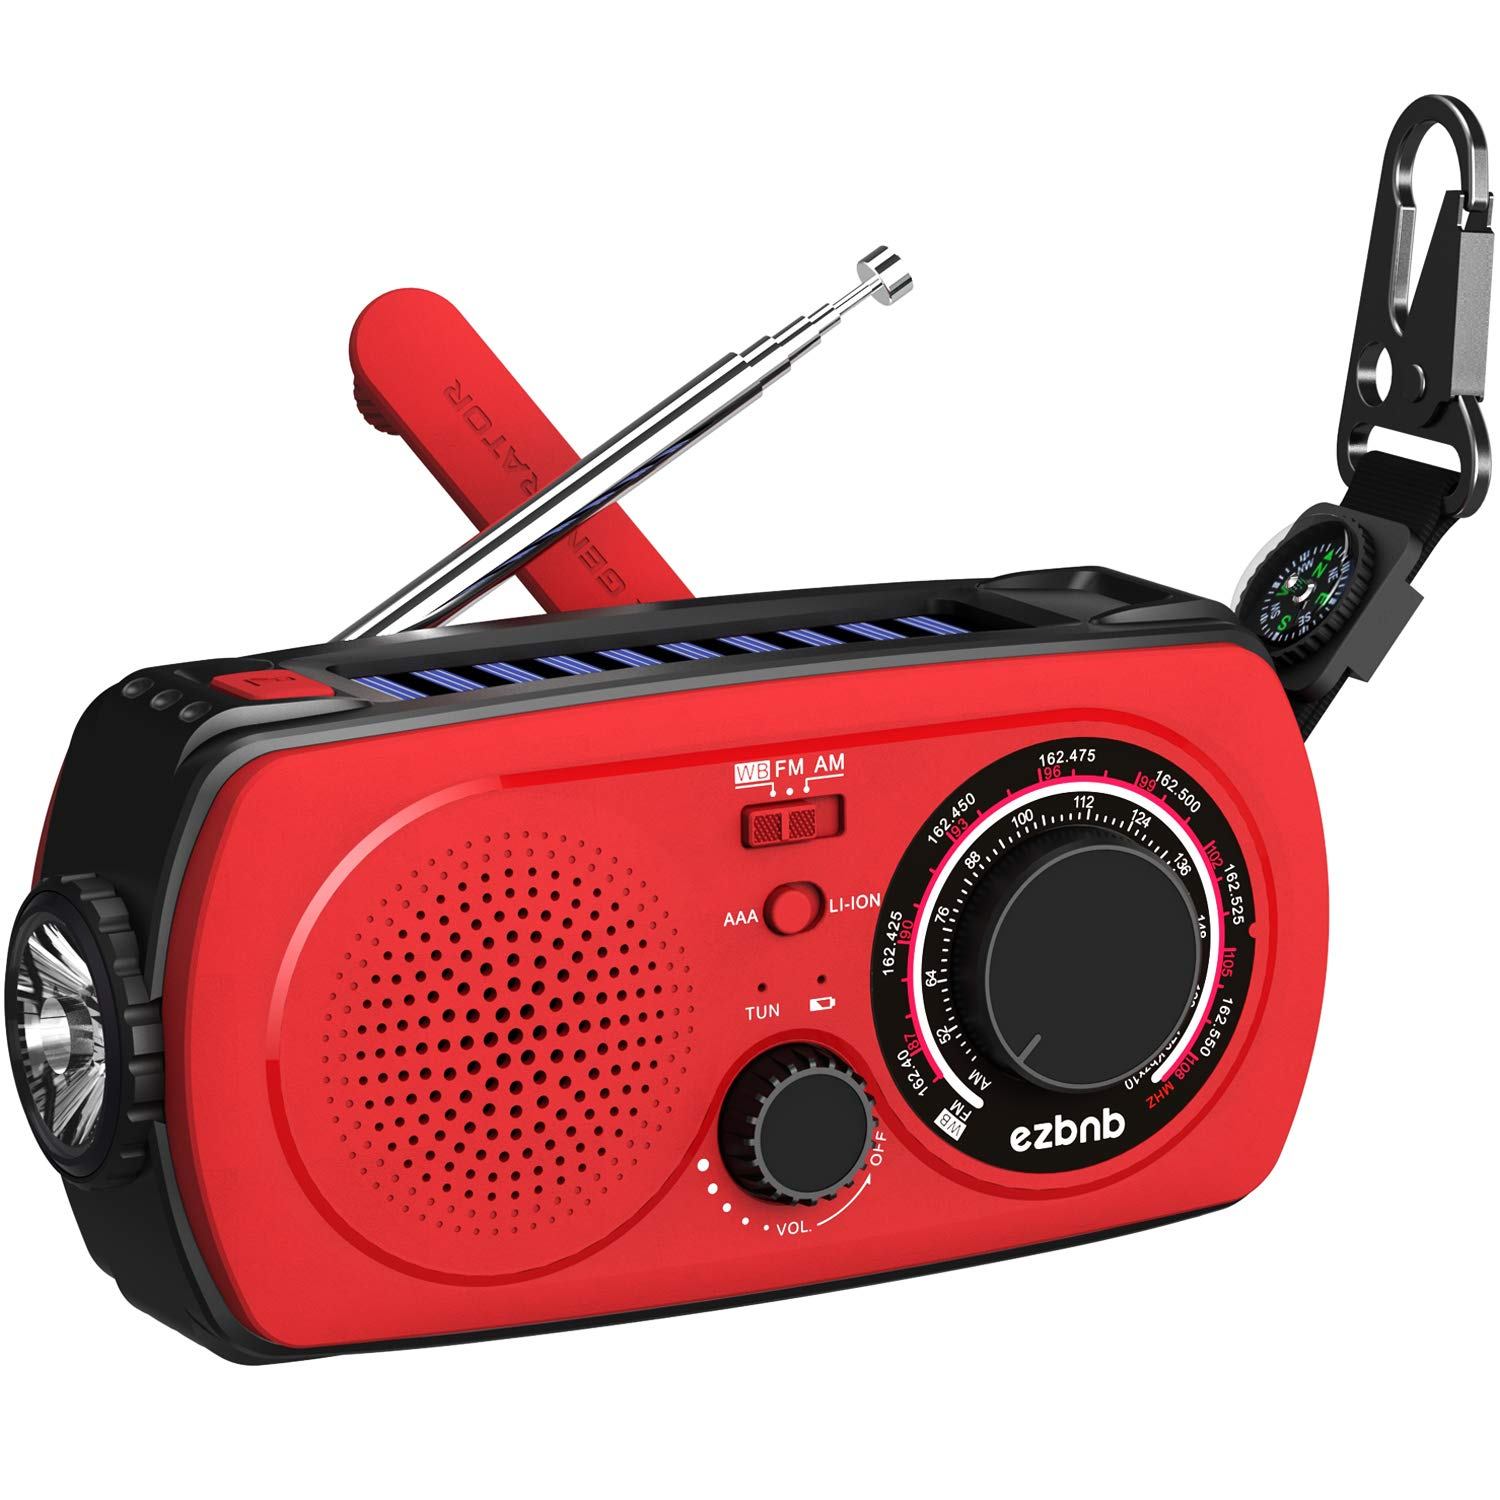 Solar Emergency Hand Crank Radio - All-New Portable NOAA Weather Radio for Outdoor Emergency with AM/FM, 2